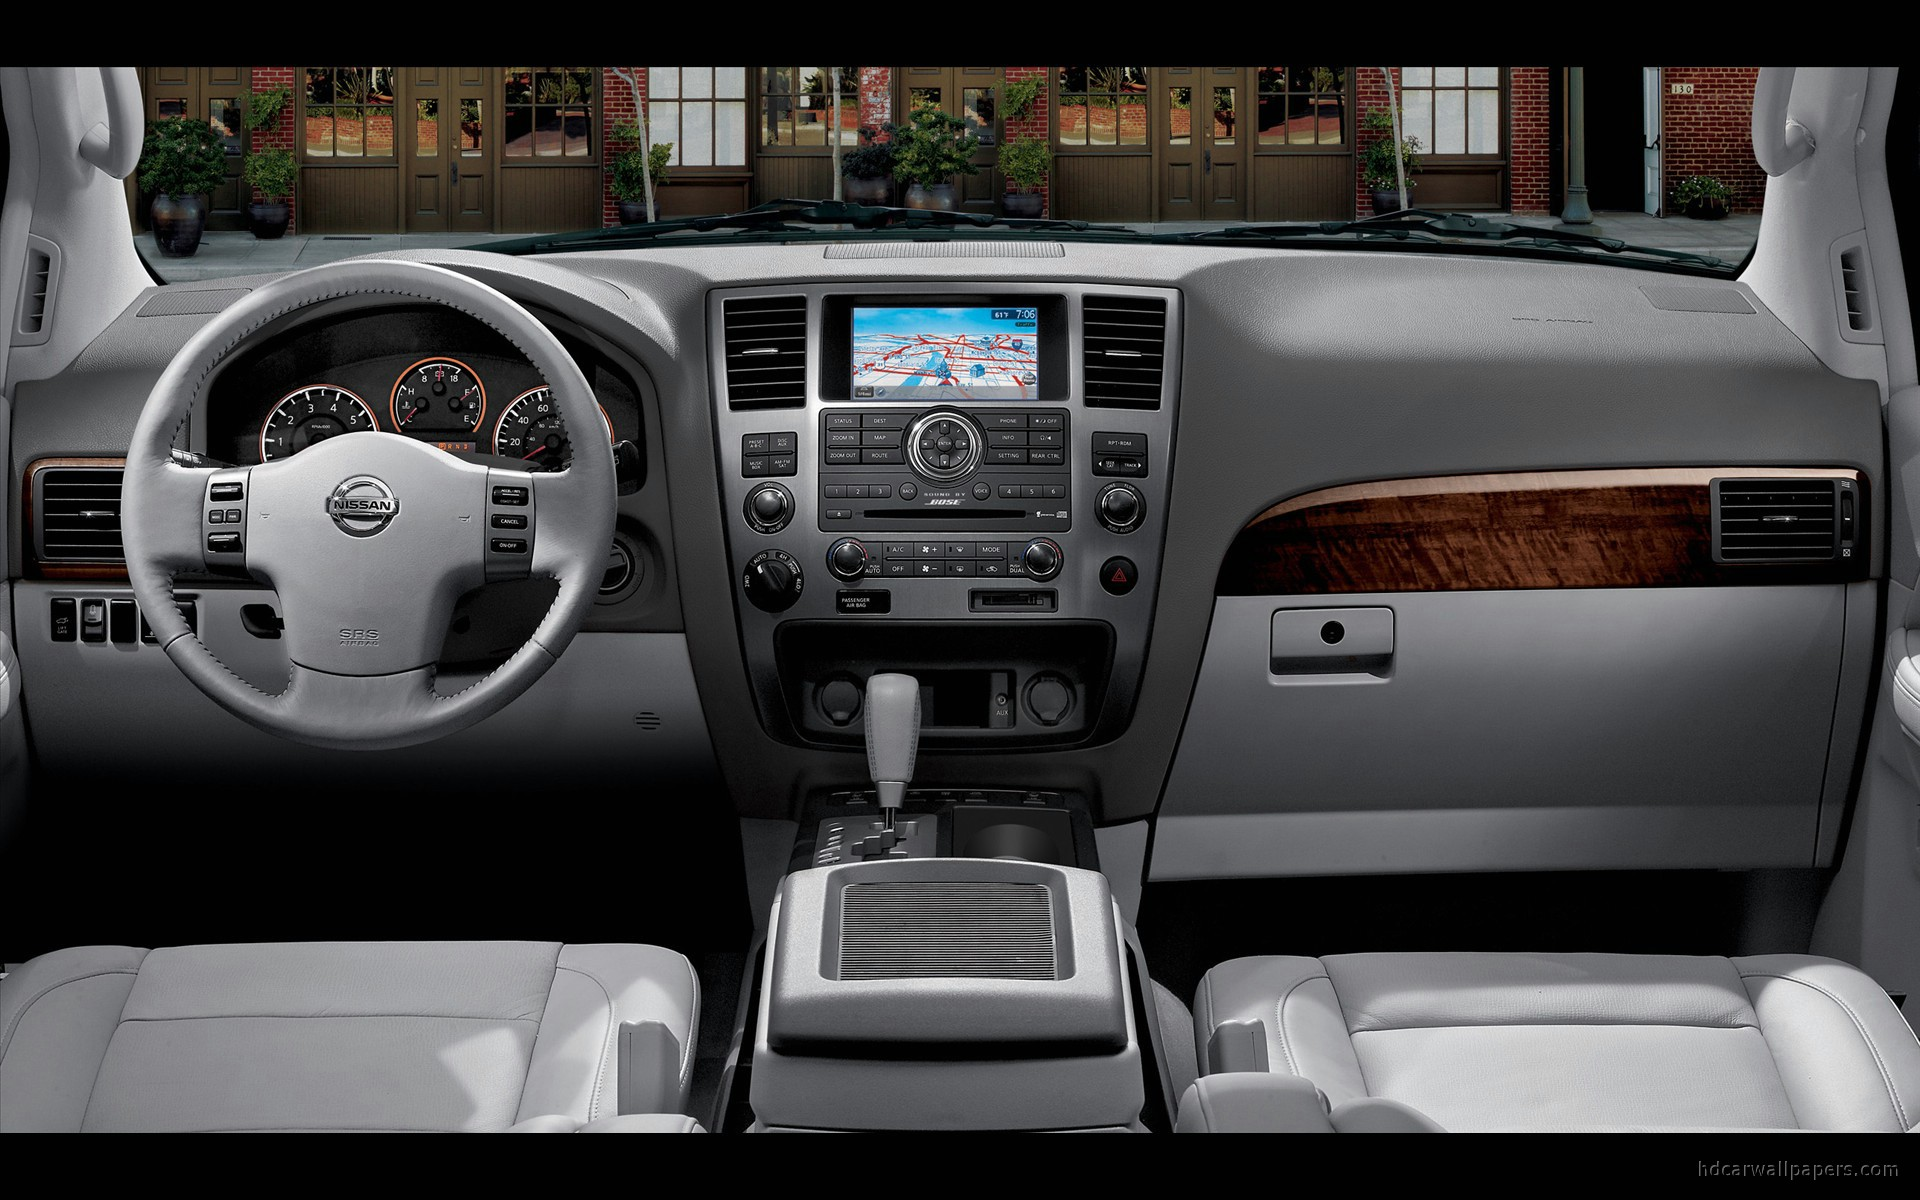 2010 Nissan Armada Interior Wallpaper Hd Car Wallpapers